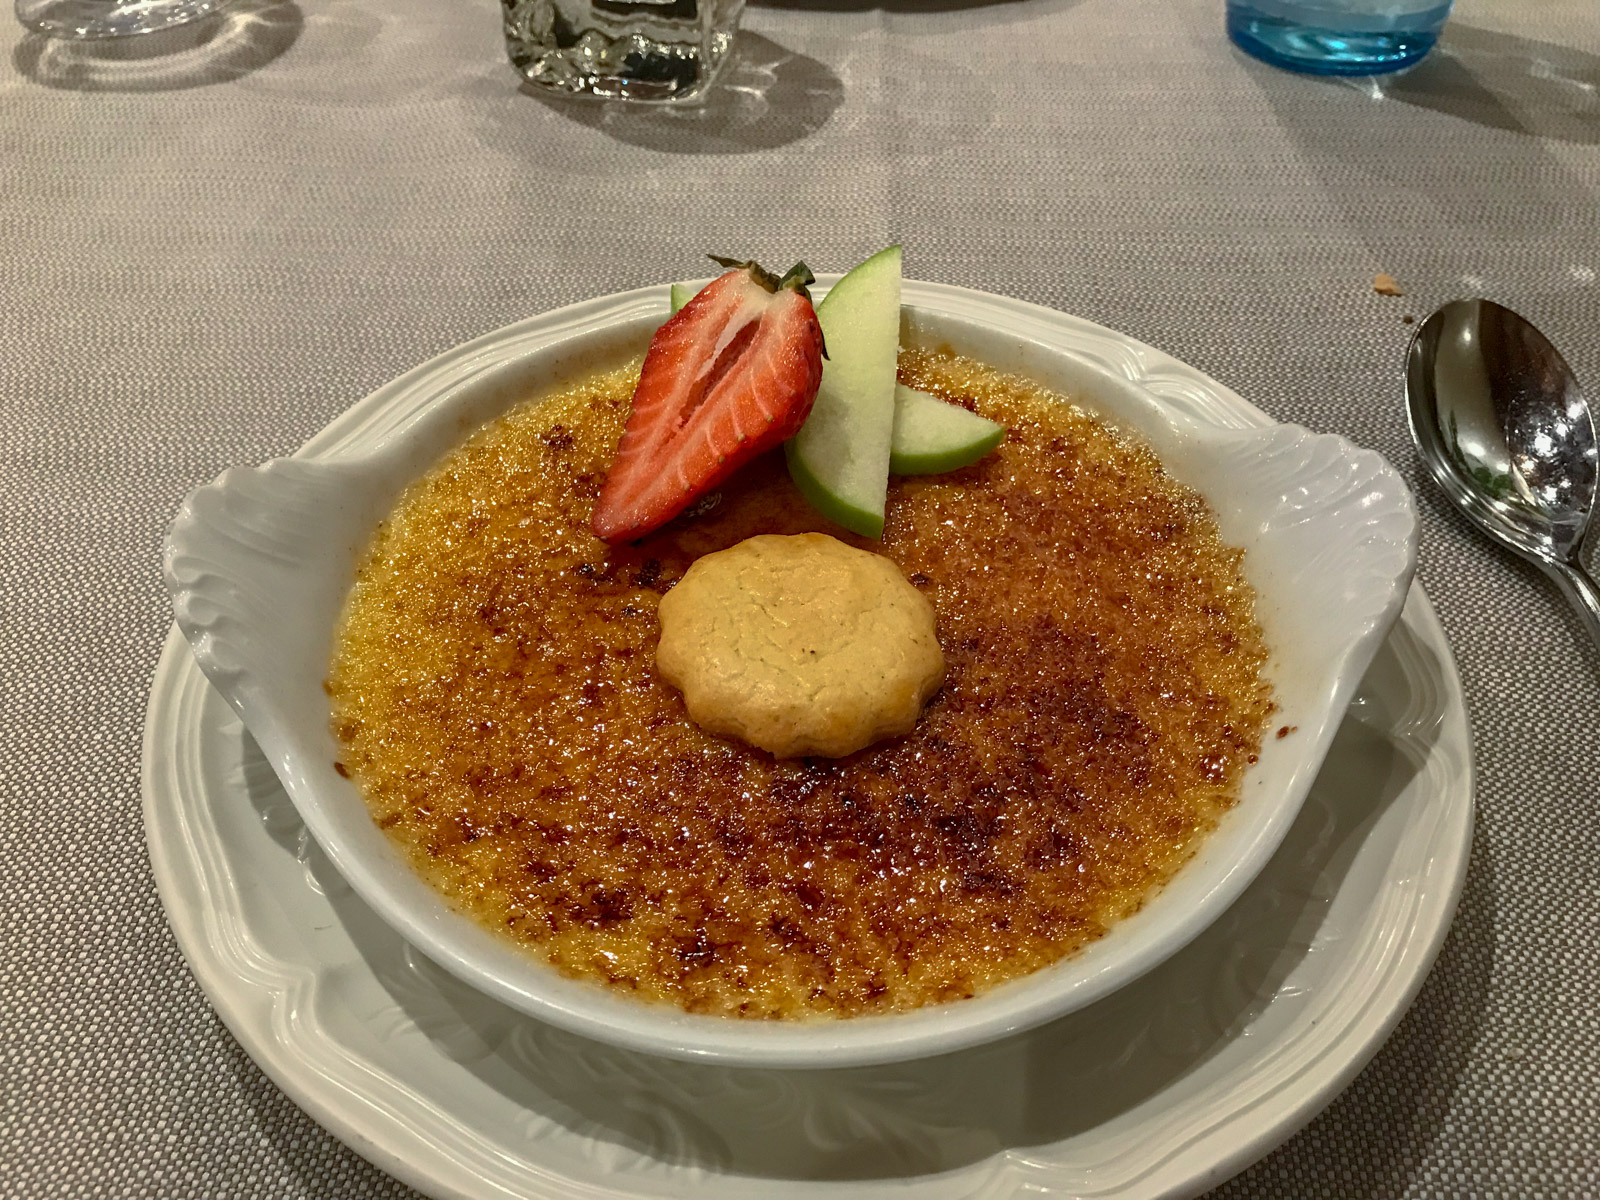 A white dish with creme brûlée served on it, topped with a couple of fruits